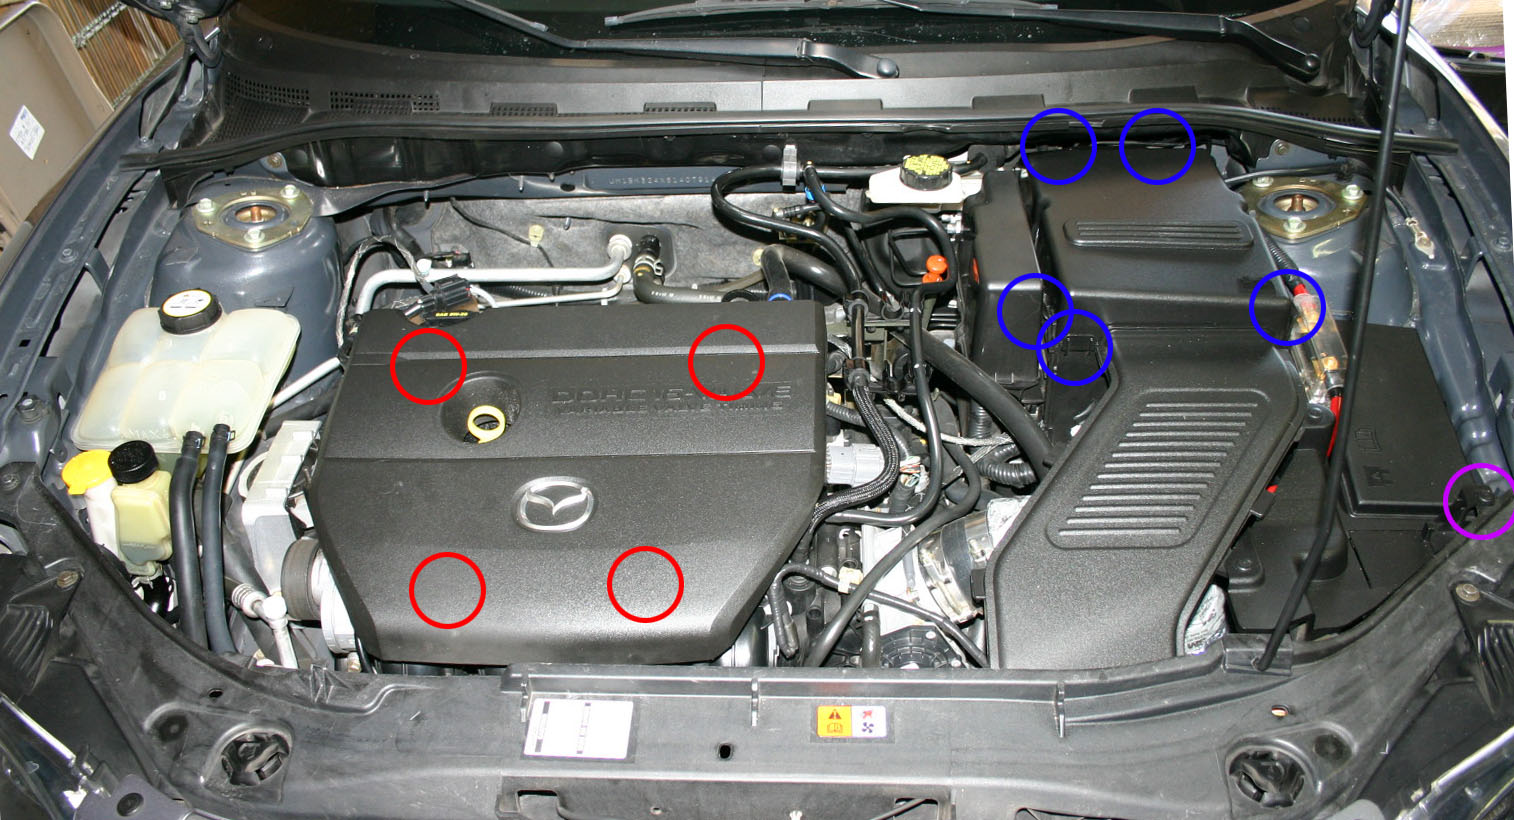 2010 mazda 3 underhood diagram mazda 3 motor mounts diagram | wiring diagram 2010 mazda 3 engine fuse box